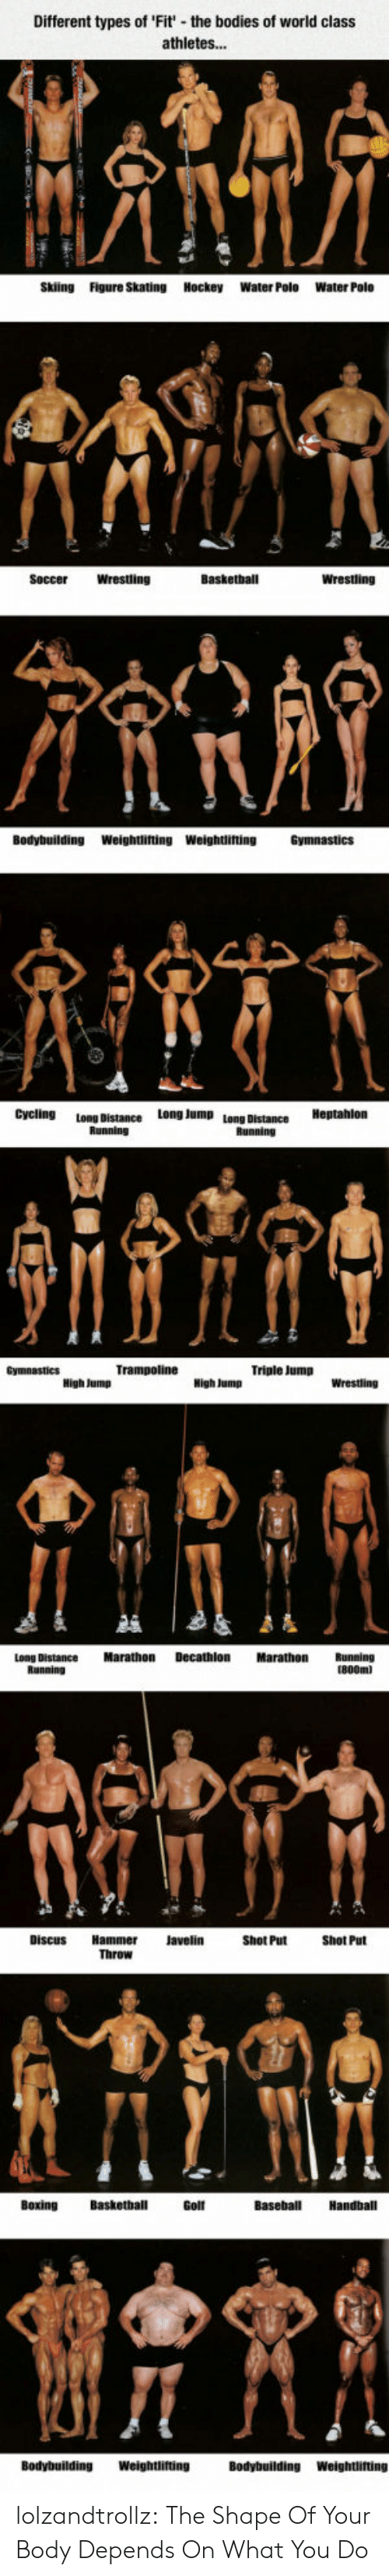 Bodybuilding: Different types of 'Fit' the boo  of world class  athletes...  Skiing  Figure Skating Hockey  Water Polo  Water Polo  Basketball  Wrestling  Wrestling  Soccer  Bodybuilding  Weightlifting Weightlifting  Cycling  Long Jump  Long Distance  Bunninn  Triple Jump  Decathlon  Marathon  Marathon  Long Distance  Shot Put  Throw  Basketball  Baseball  Handball  Bοxing  Golf  Weightlifting  Bodybuilding  Bodybuilding  Weightlifting lolzandtrollz:  The Shape Of Your Body Depends On What You Do